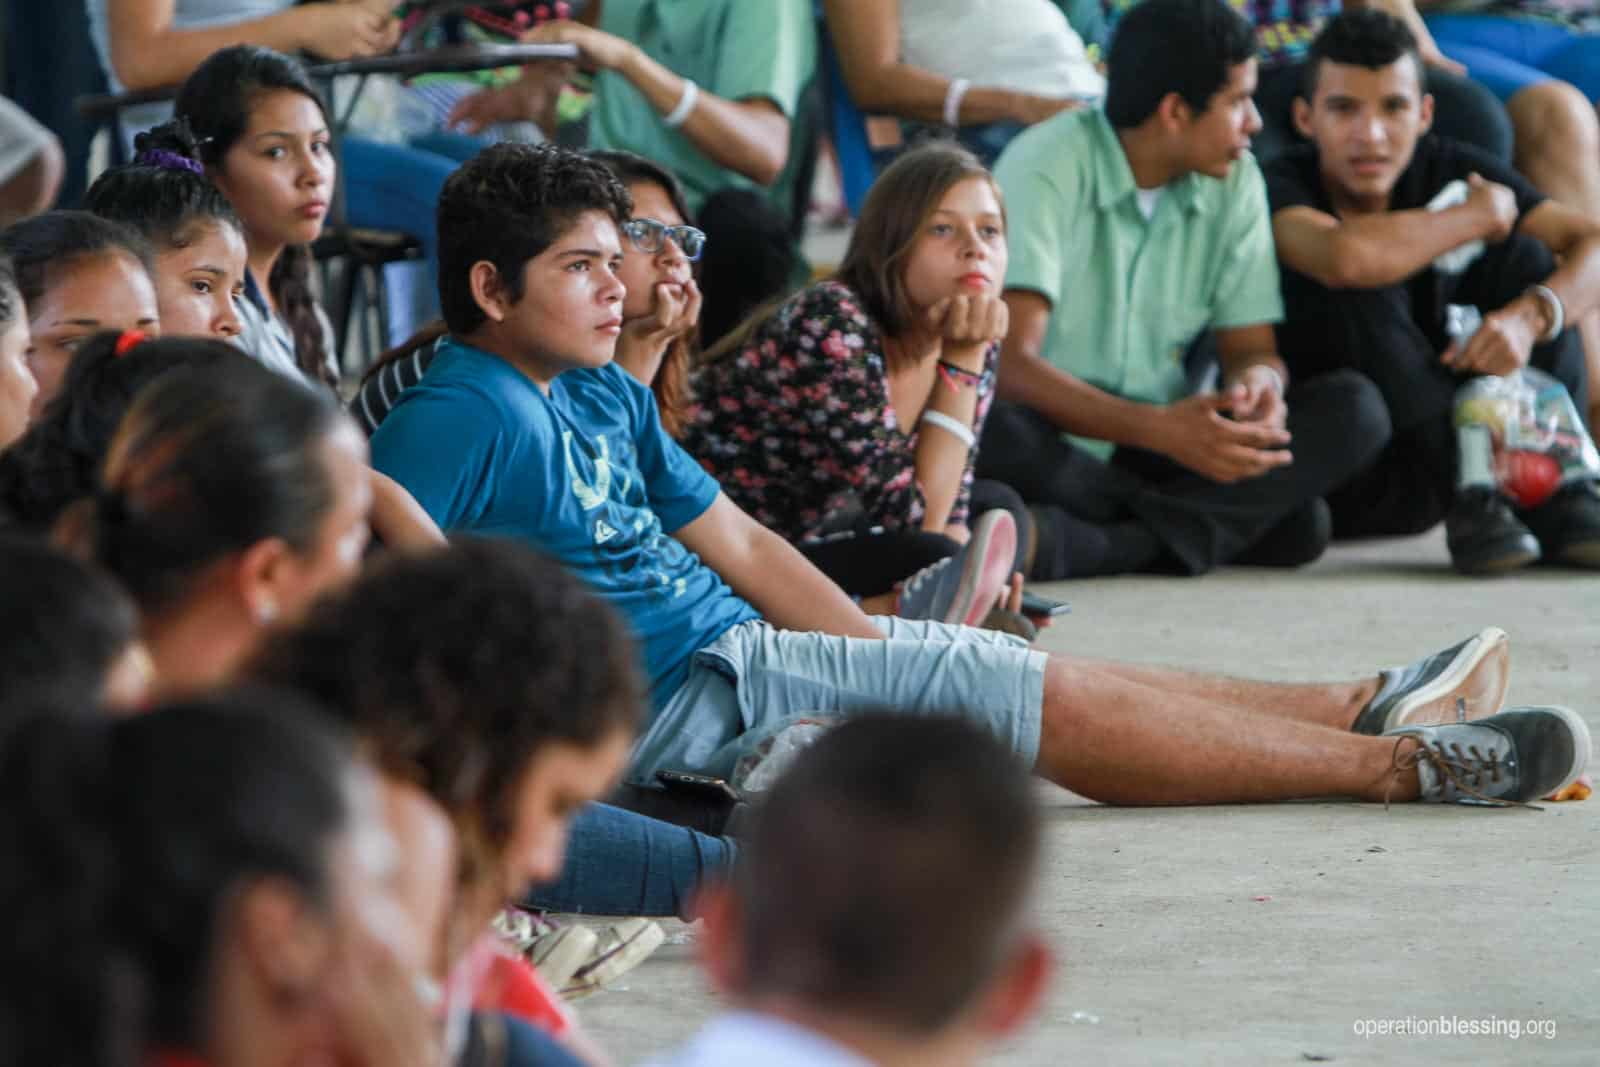 Young people listen intently to a presentation on how to deal with sexual abuse at an event organized by Seeds of Hope, an Operation Blessing partner in Costa Rica.